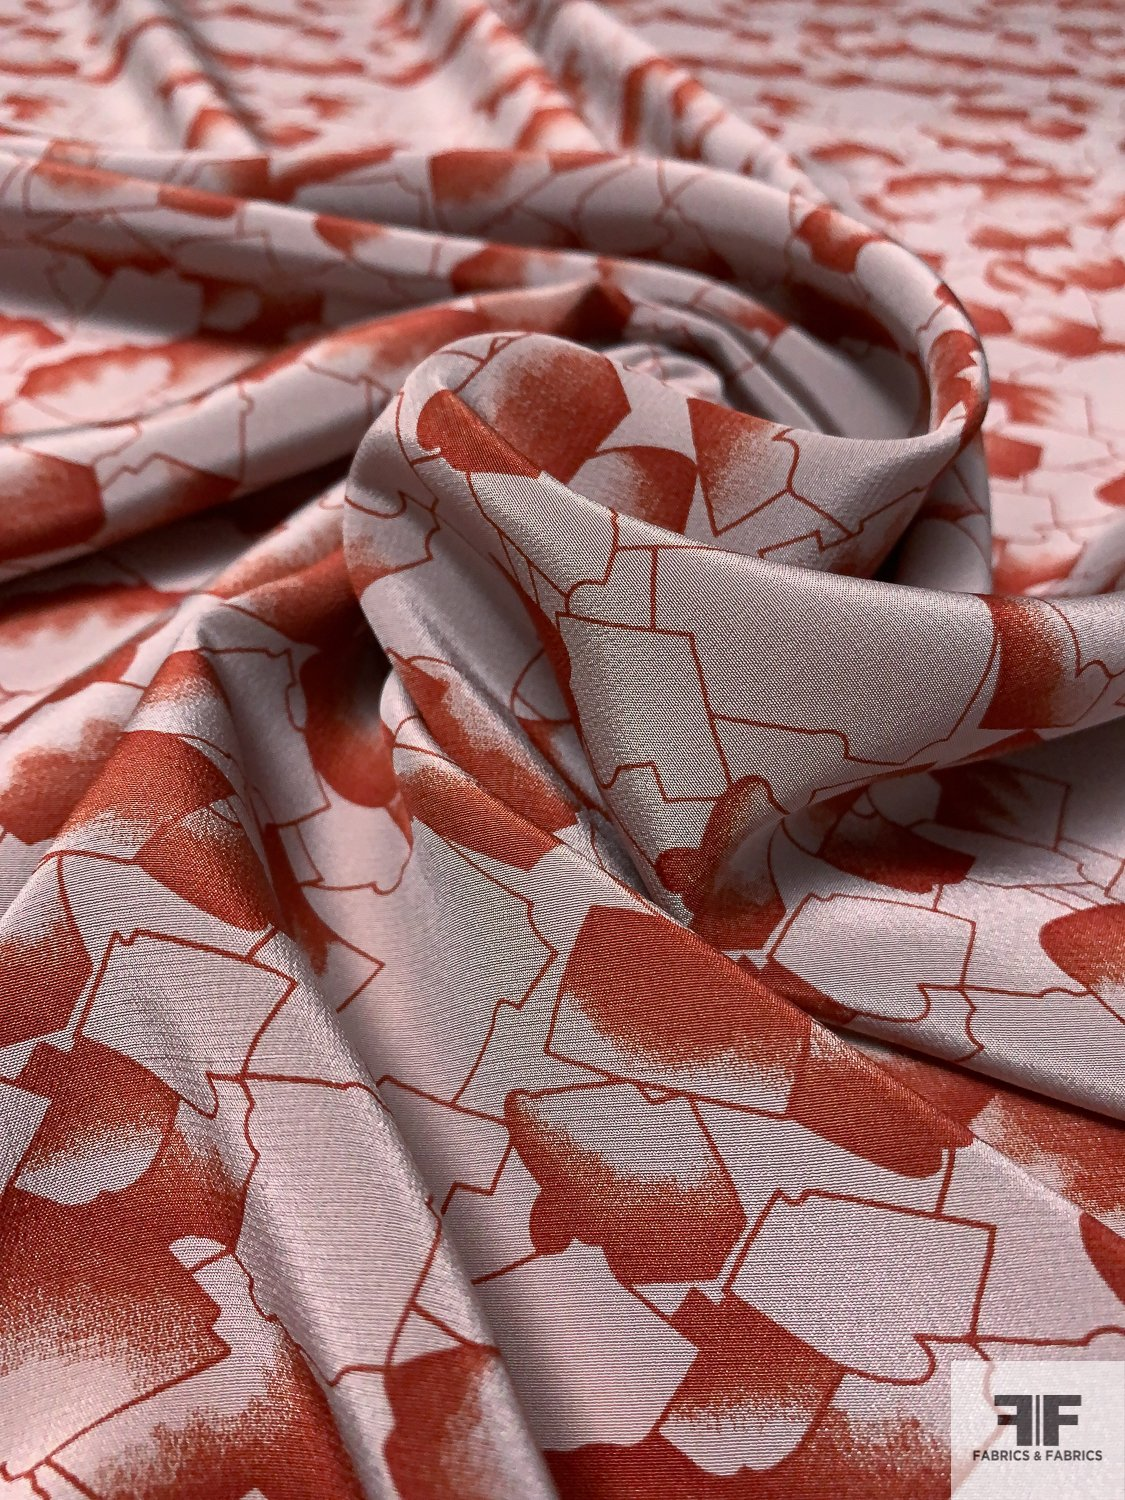 Abstract Puzzle-Like Shapes Printed Silk Crepe de Chine - Brick / Grey-Sand